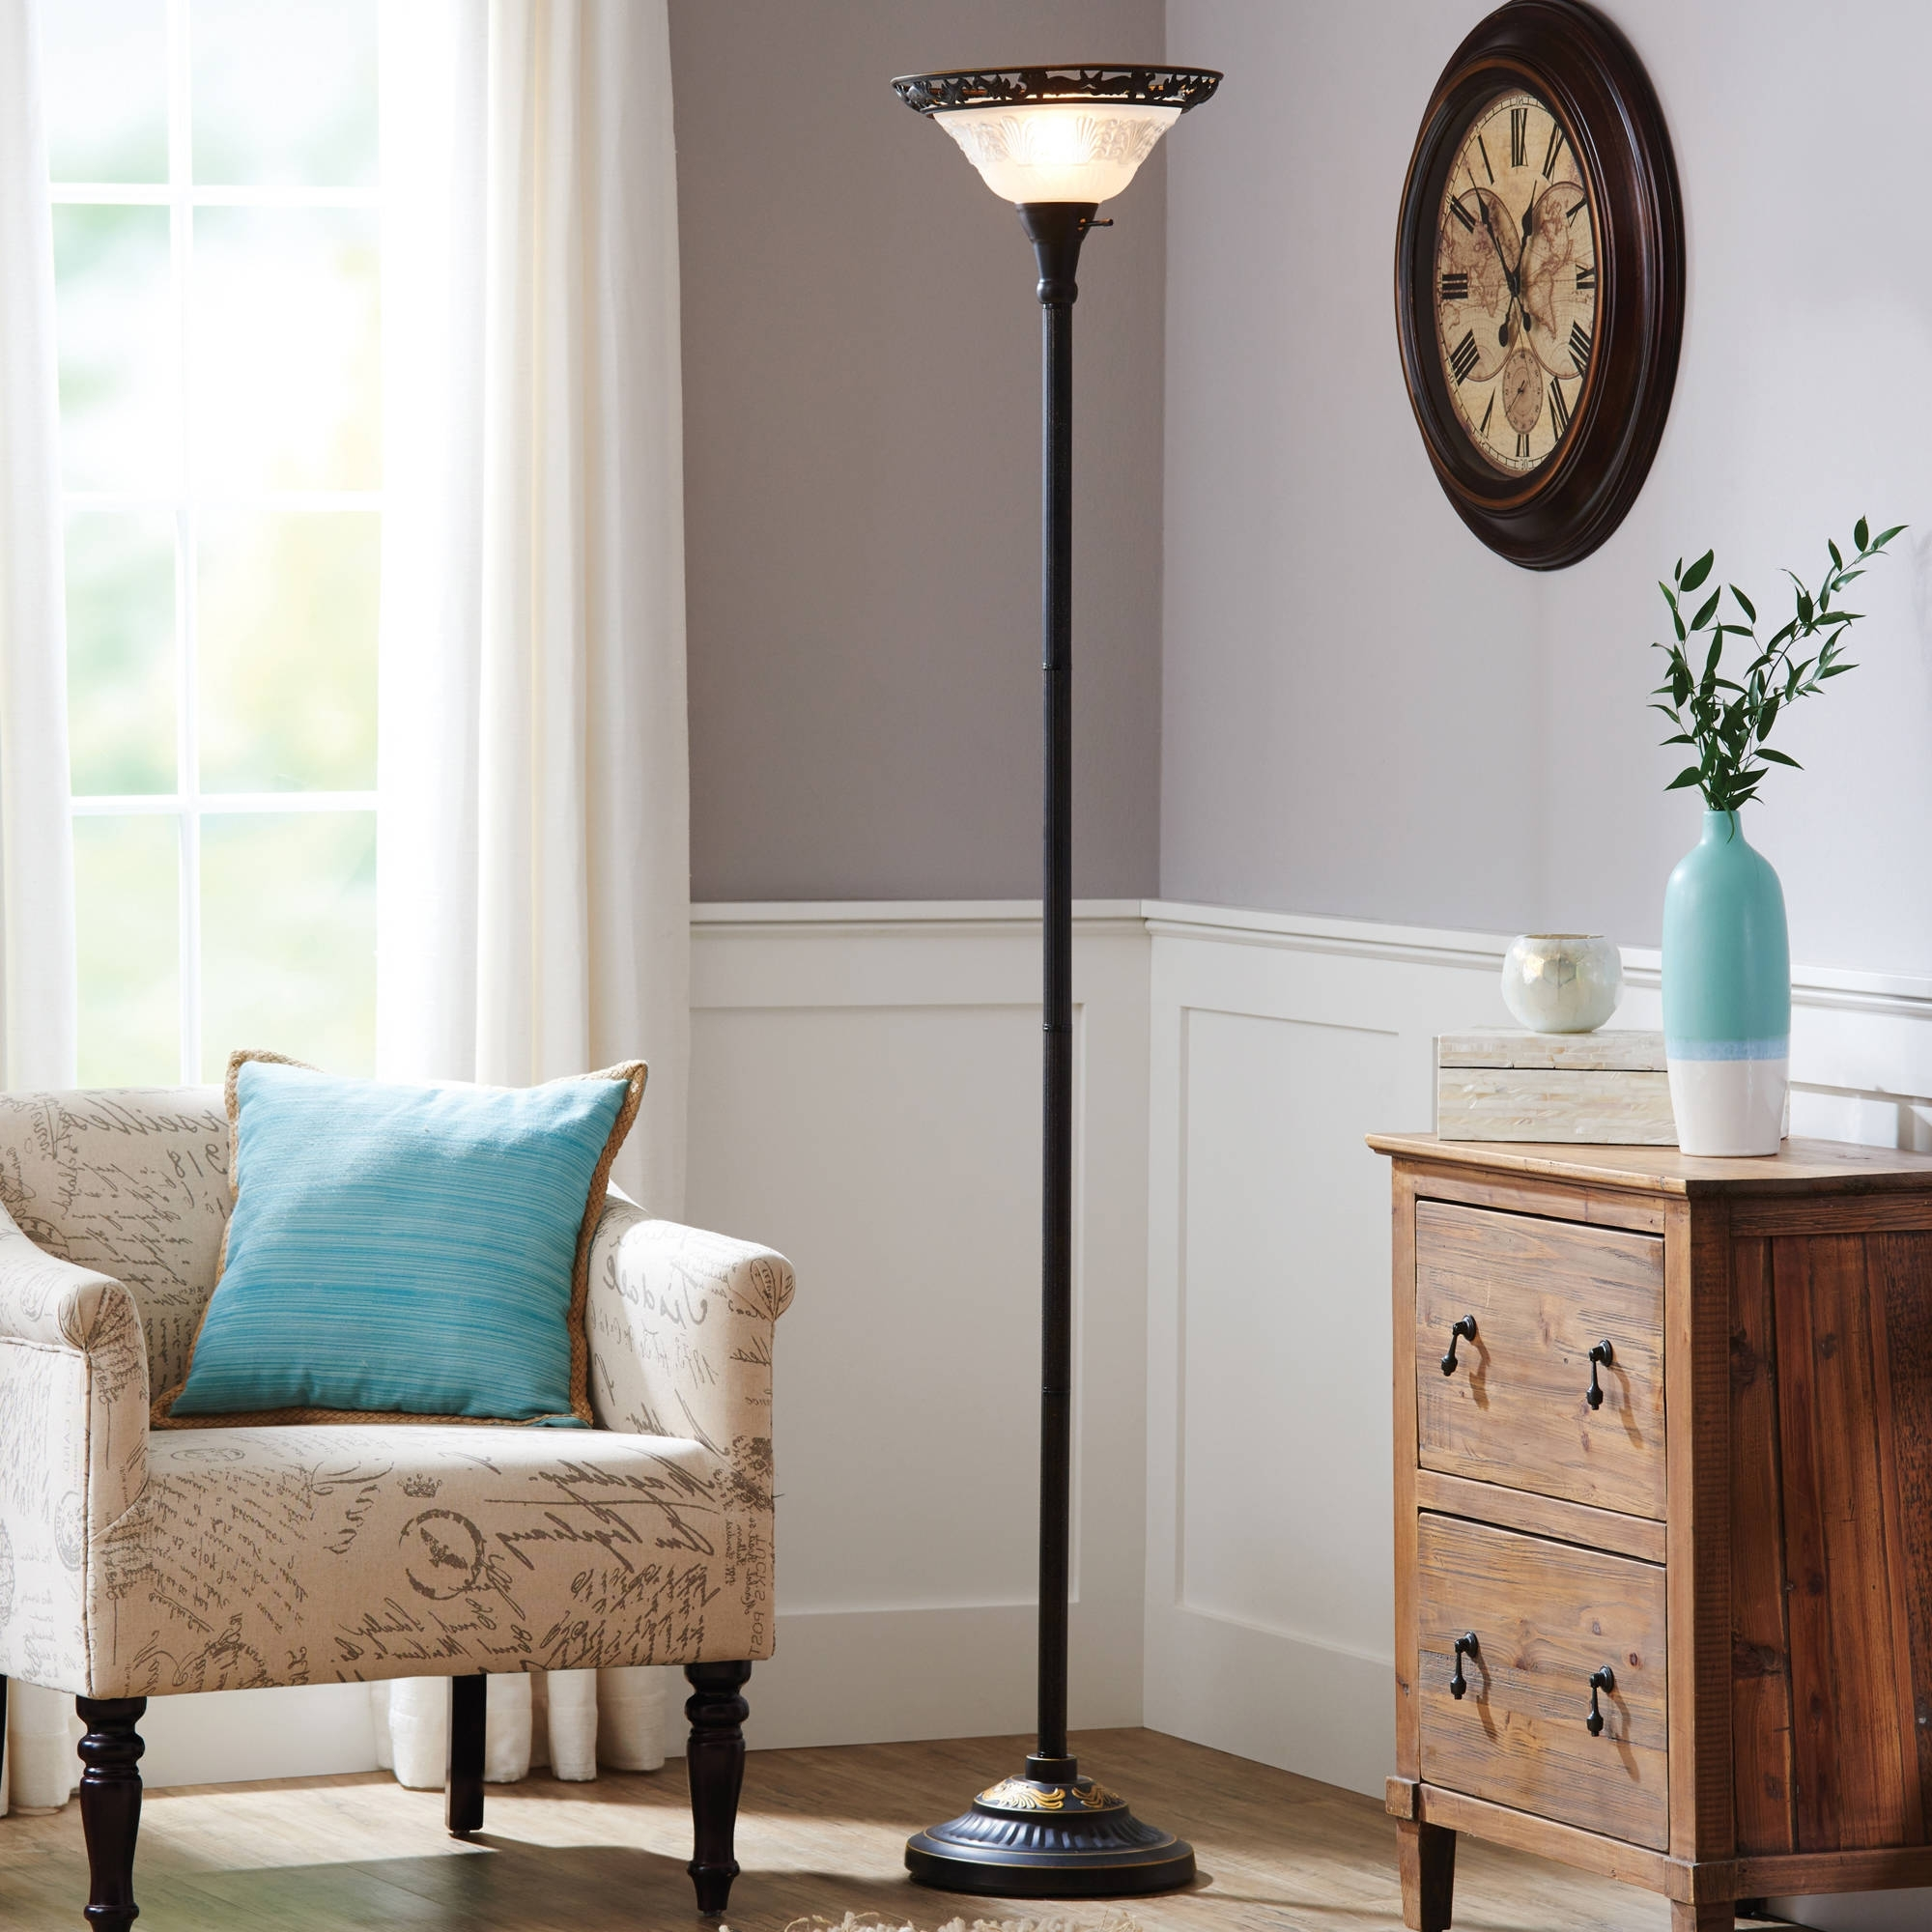 fancy living room tables decoration ideas for large walls view gallery of table lamps showing 12 20 photos 2019 inside light luxury modern floor lamp home design